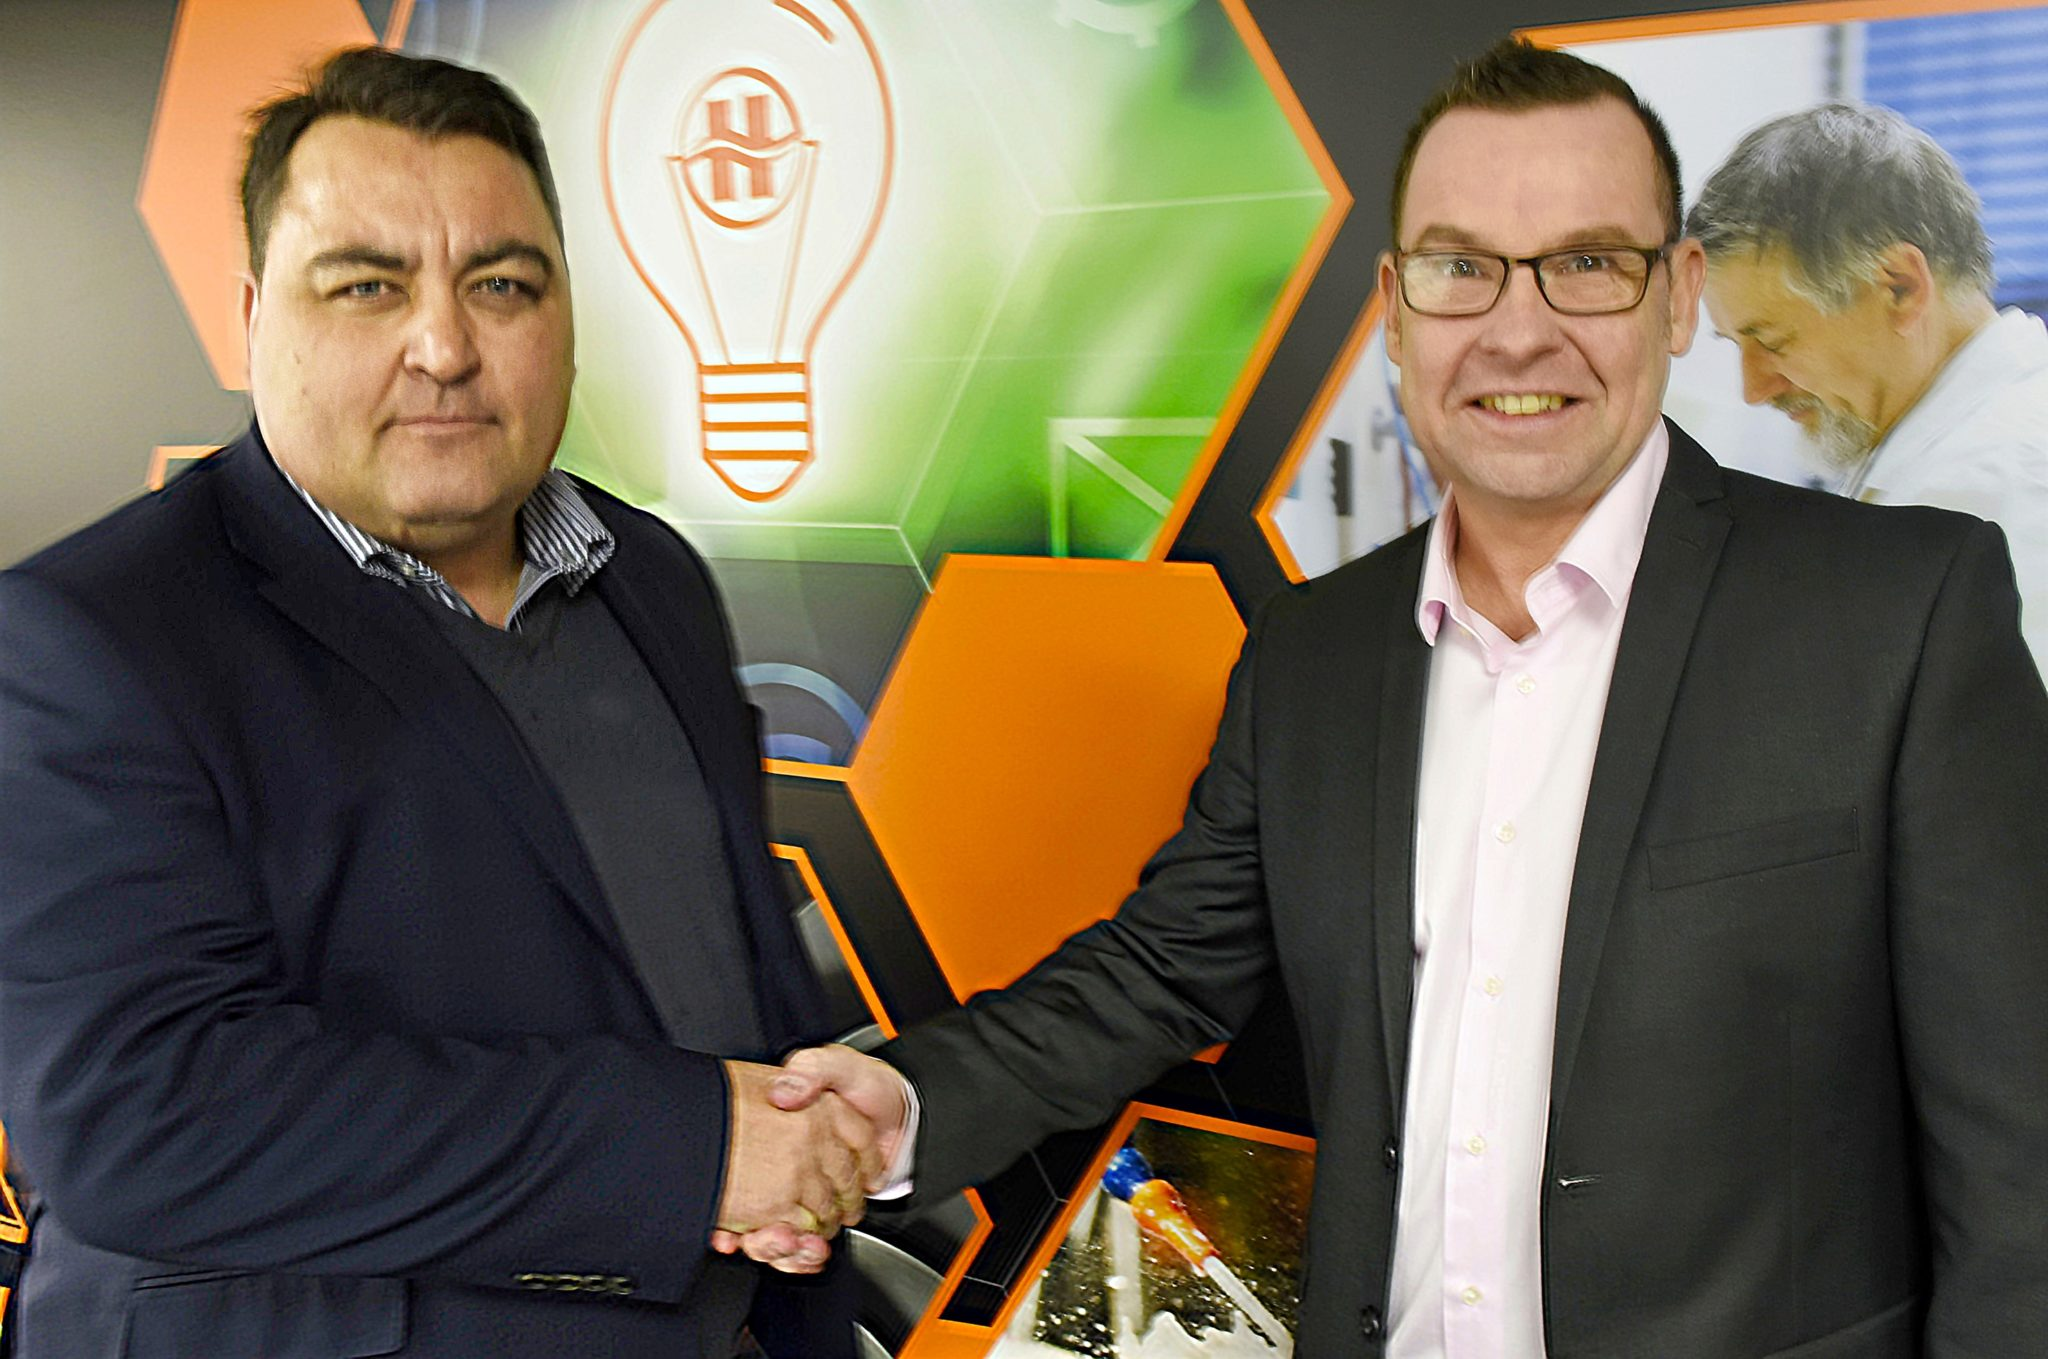 Photograph of Lee Bowditch and Matthew Bartle Shaking Hands